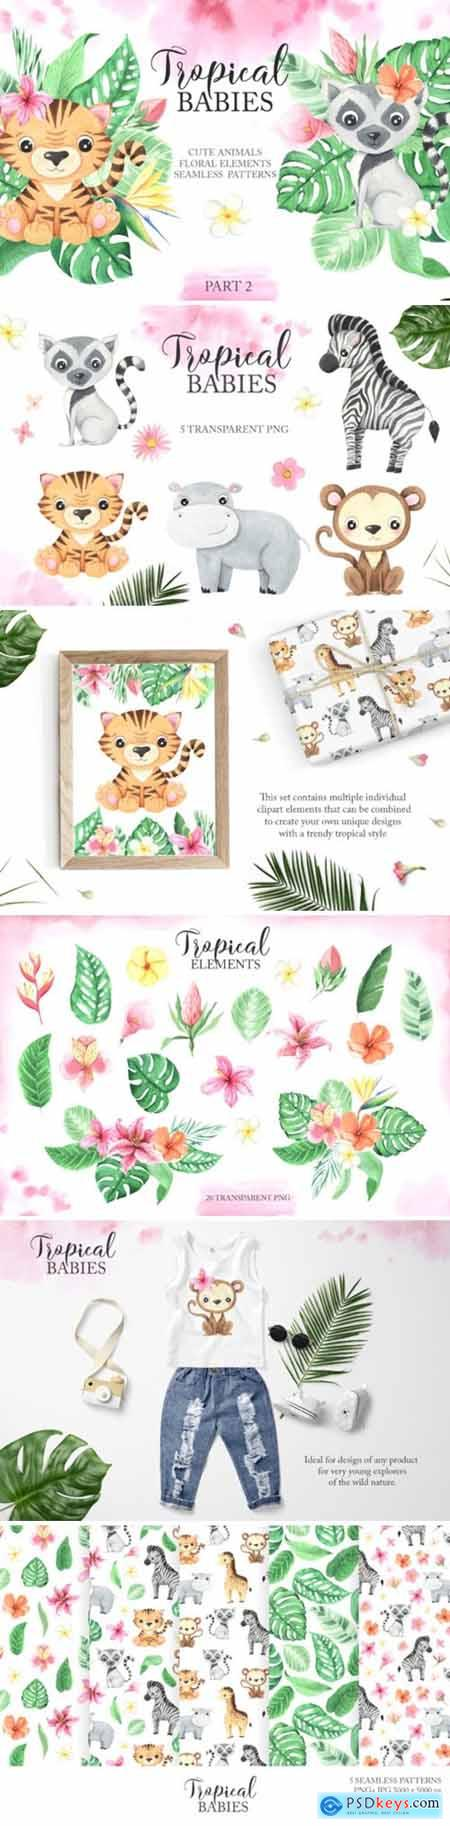 Watercolor Tropical Babies Set 2 3673153